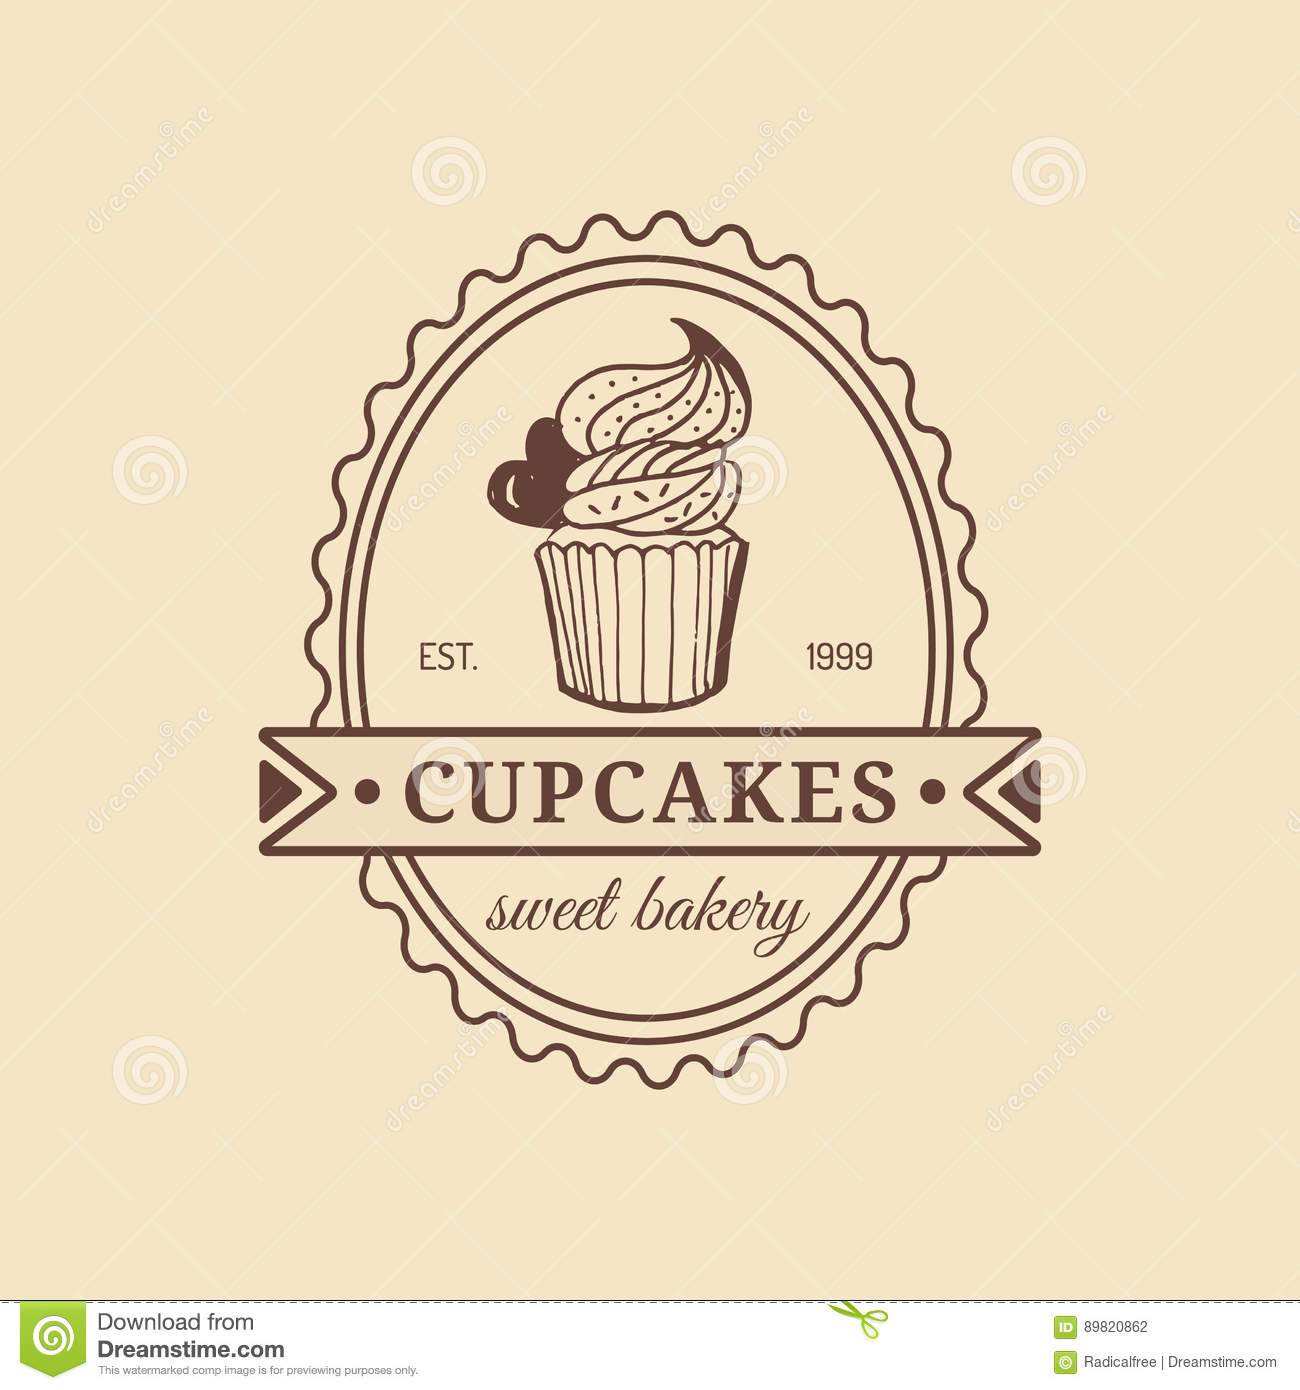 Vintage Cake Logo Design : Bakery Vintage Stamp Sign Cartoon Vector CartoonDealer ...